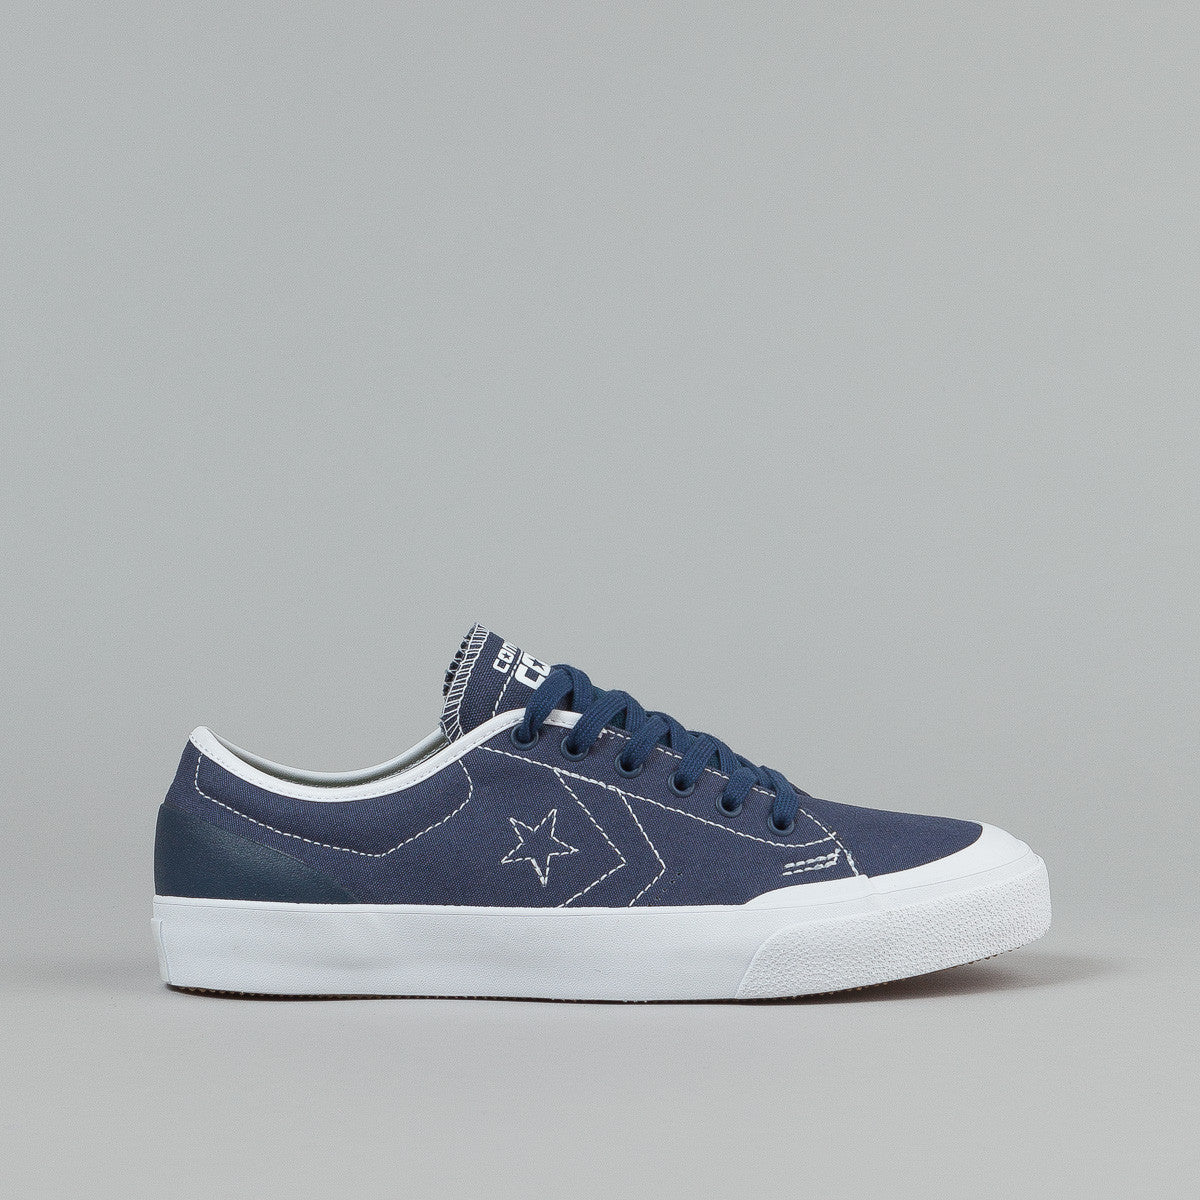 Converse CONS Sumner OX Shoes